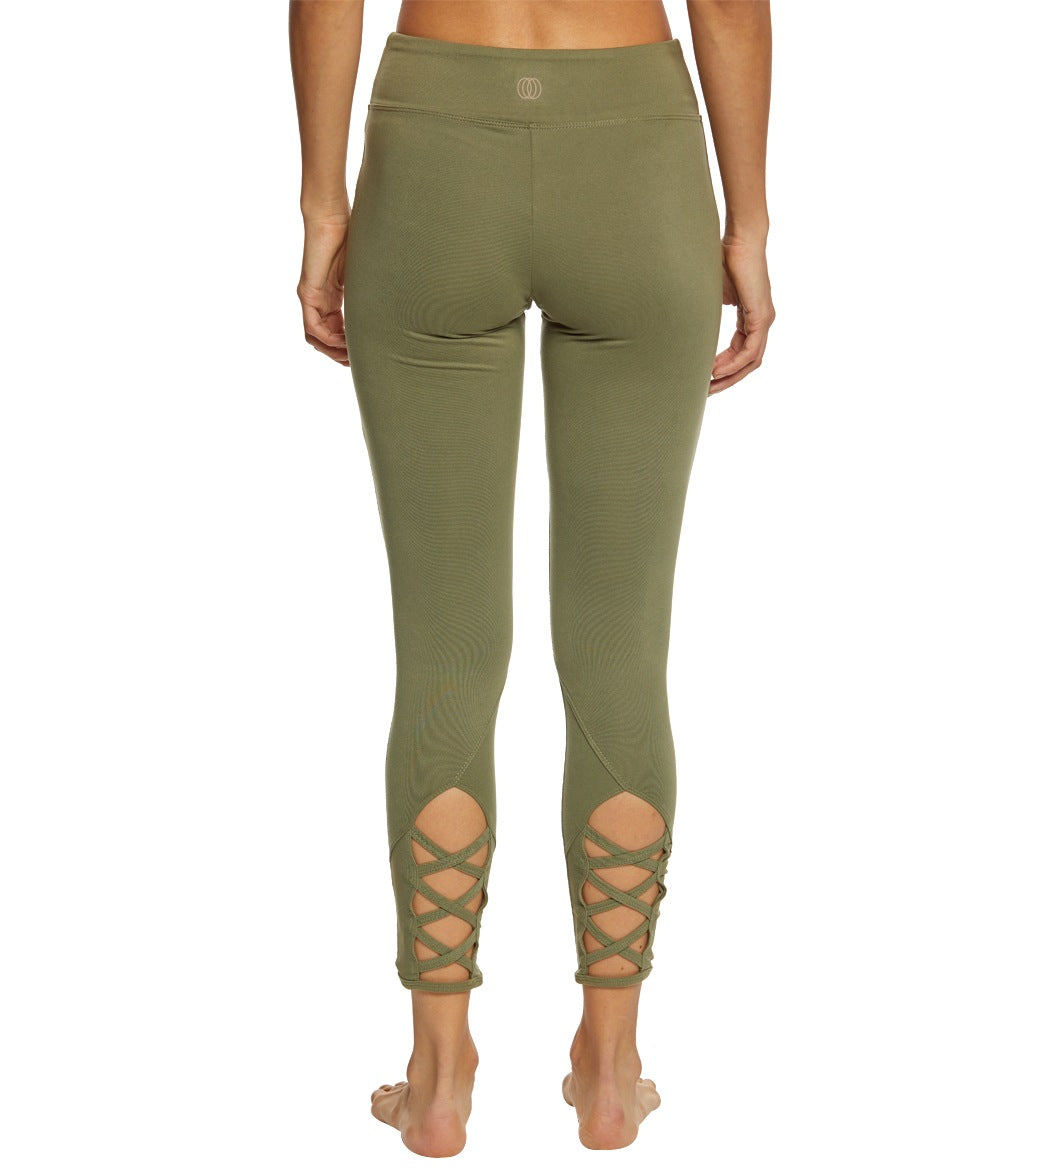 8842708b82fe61 Balance Collection Perry Yoga Leggings at YogaOutlet.com